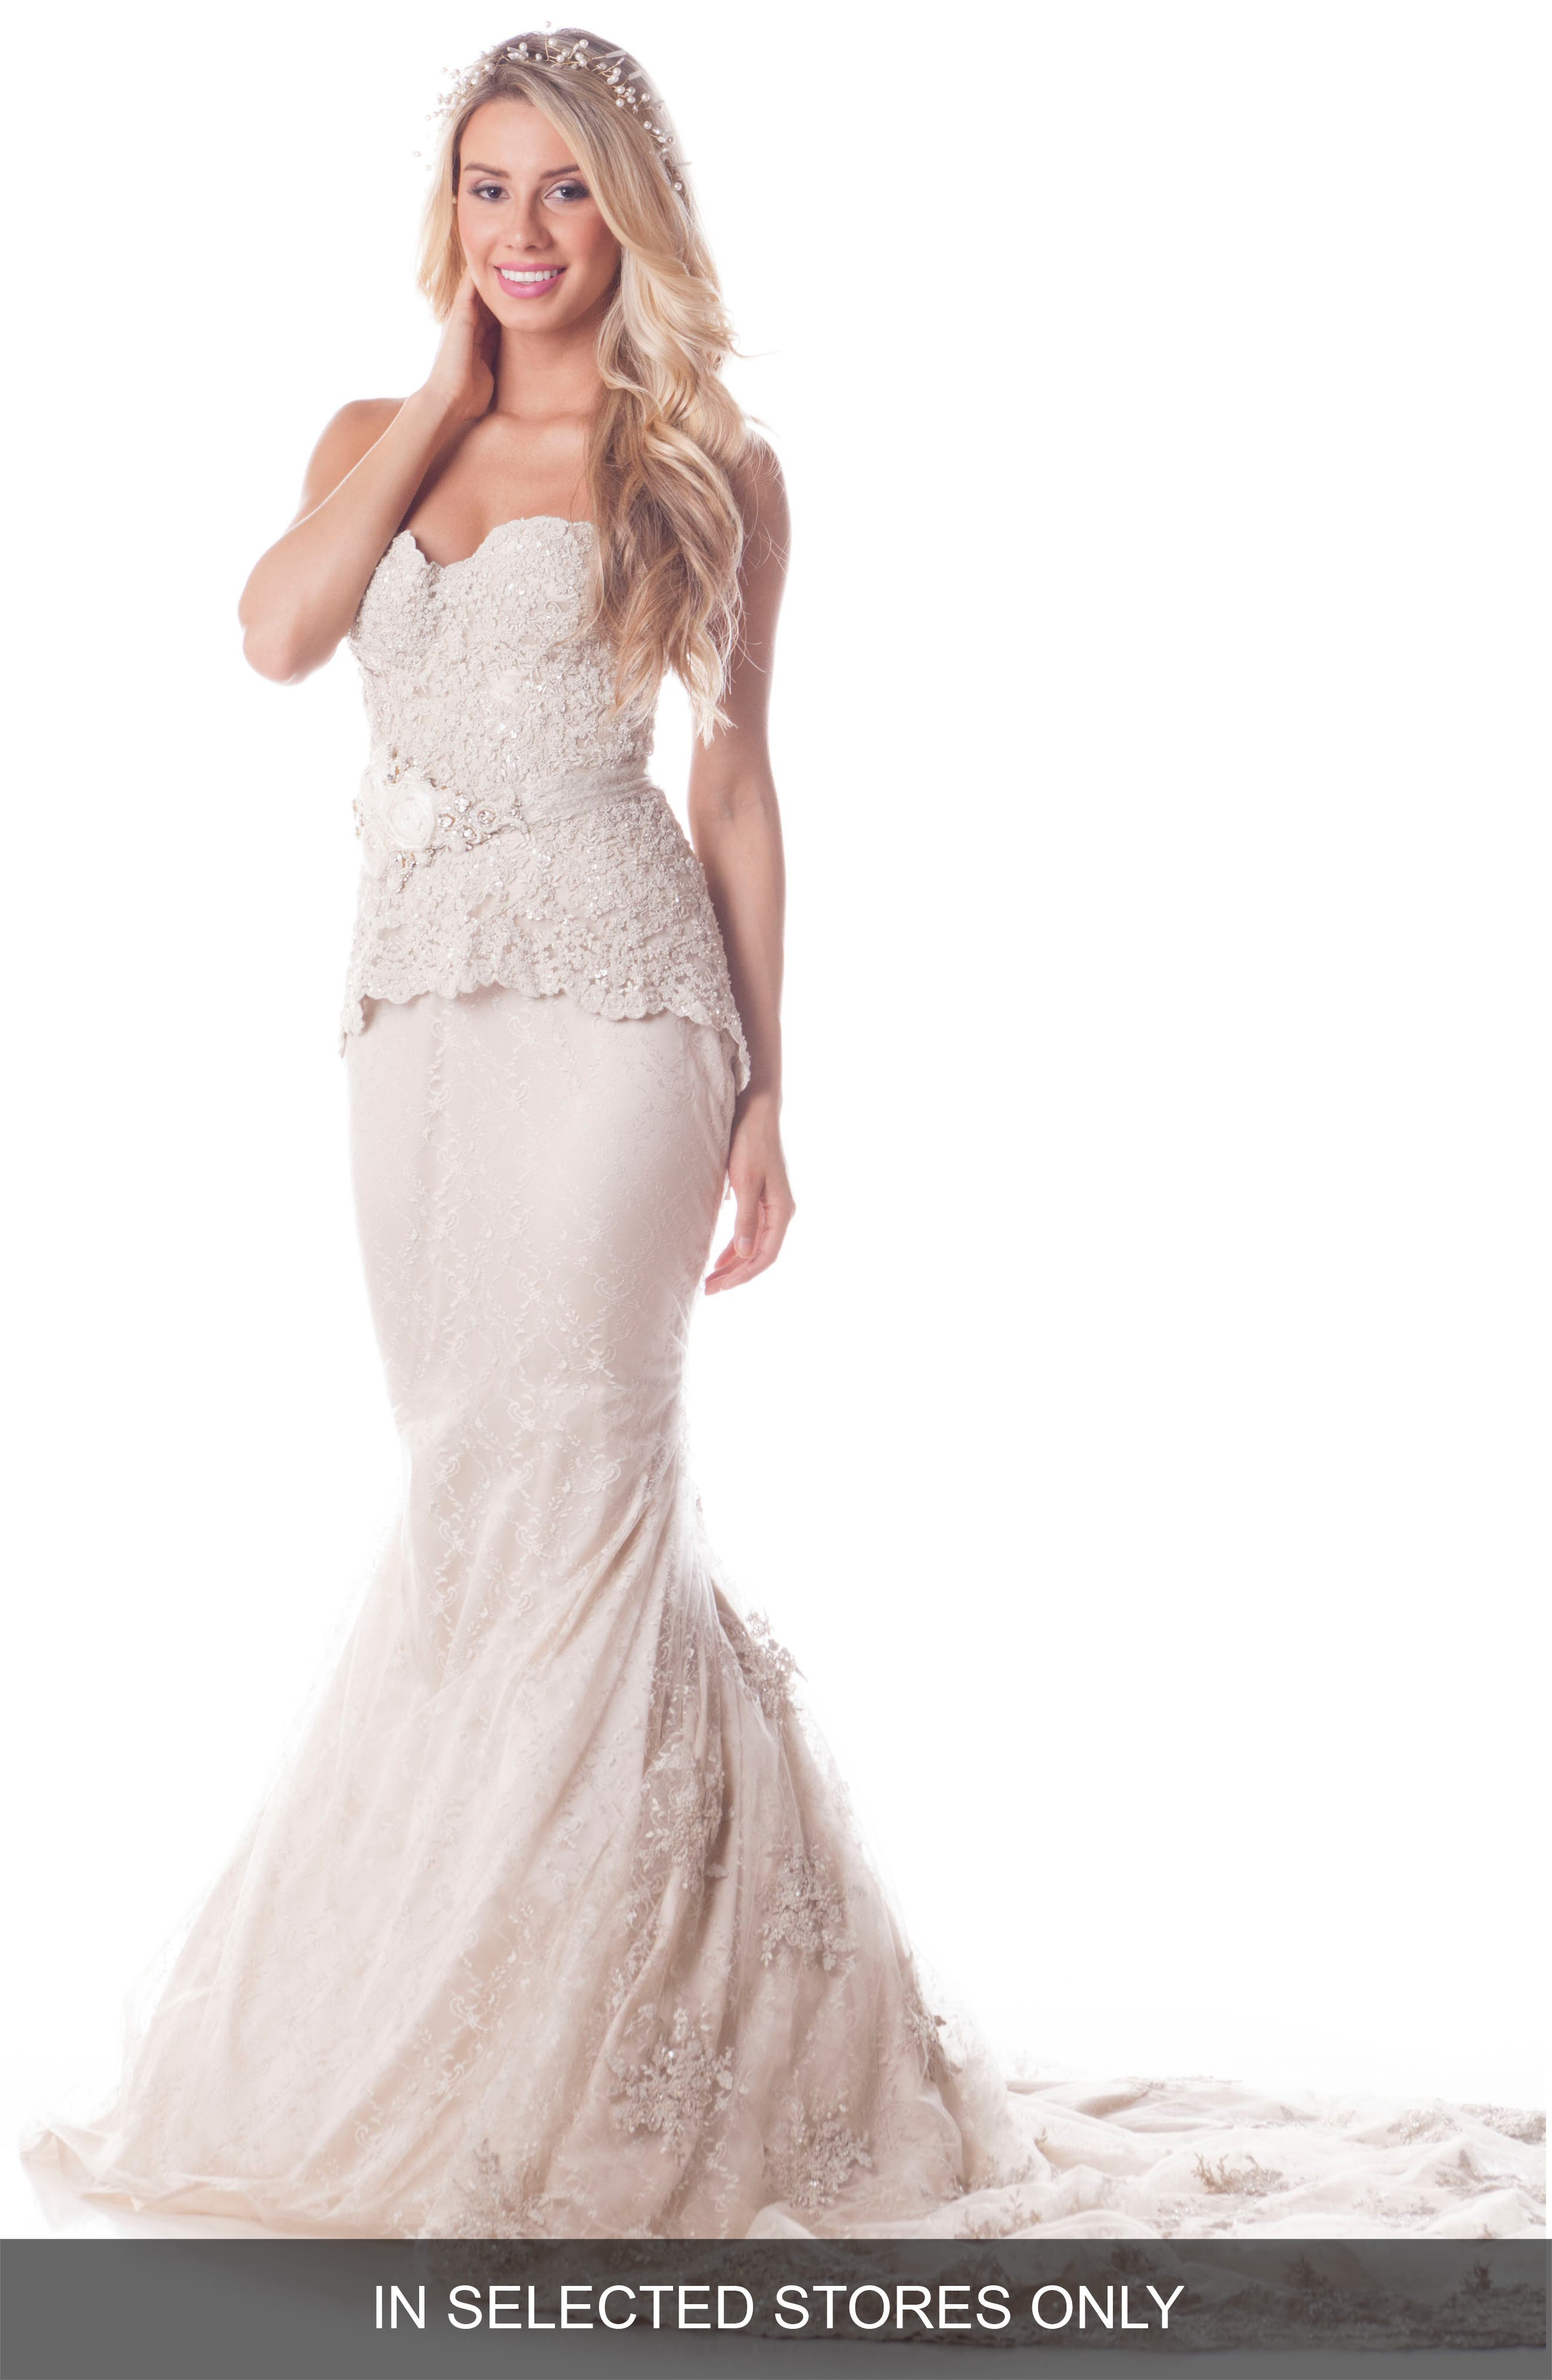 Main Image - Olia Zavozina Leah Strapless Embroidered Lace Silk Gown